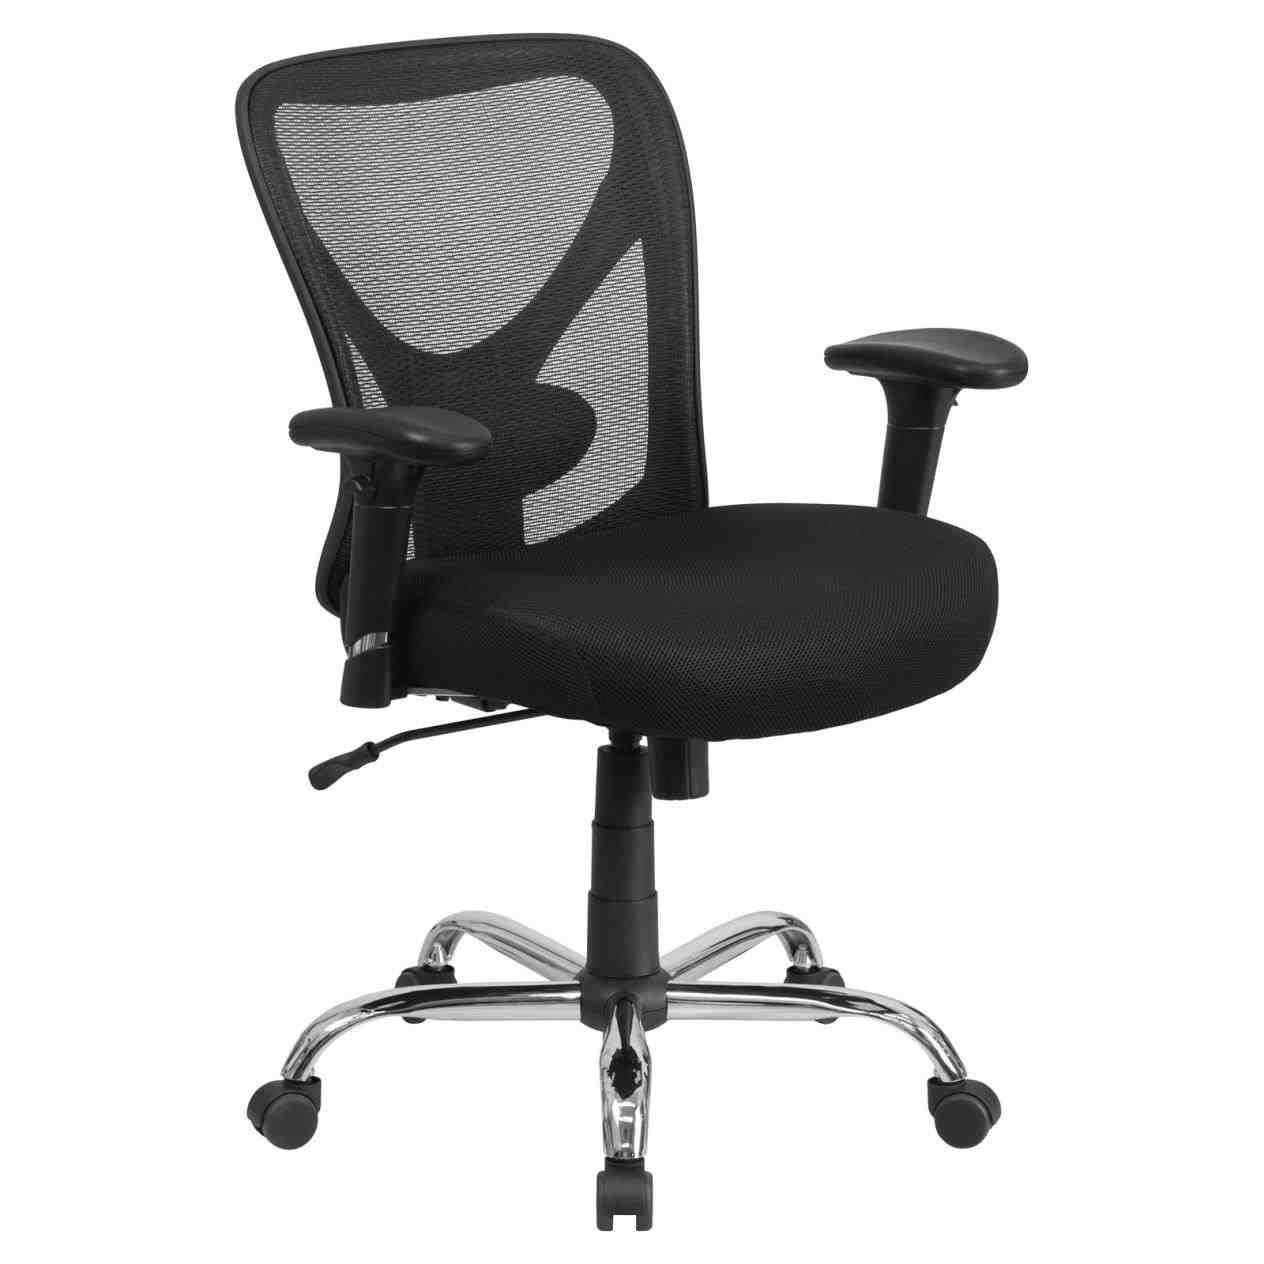 Cheap office chairs near me full size of seat u0026 chairs office chairs uk home